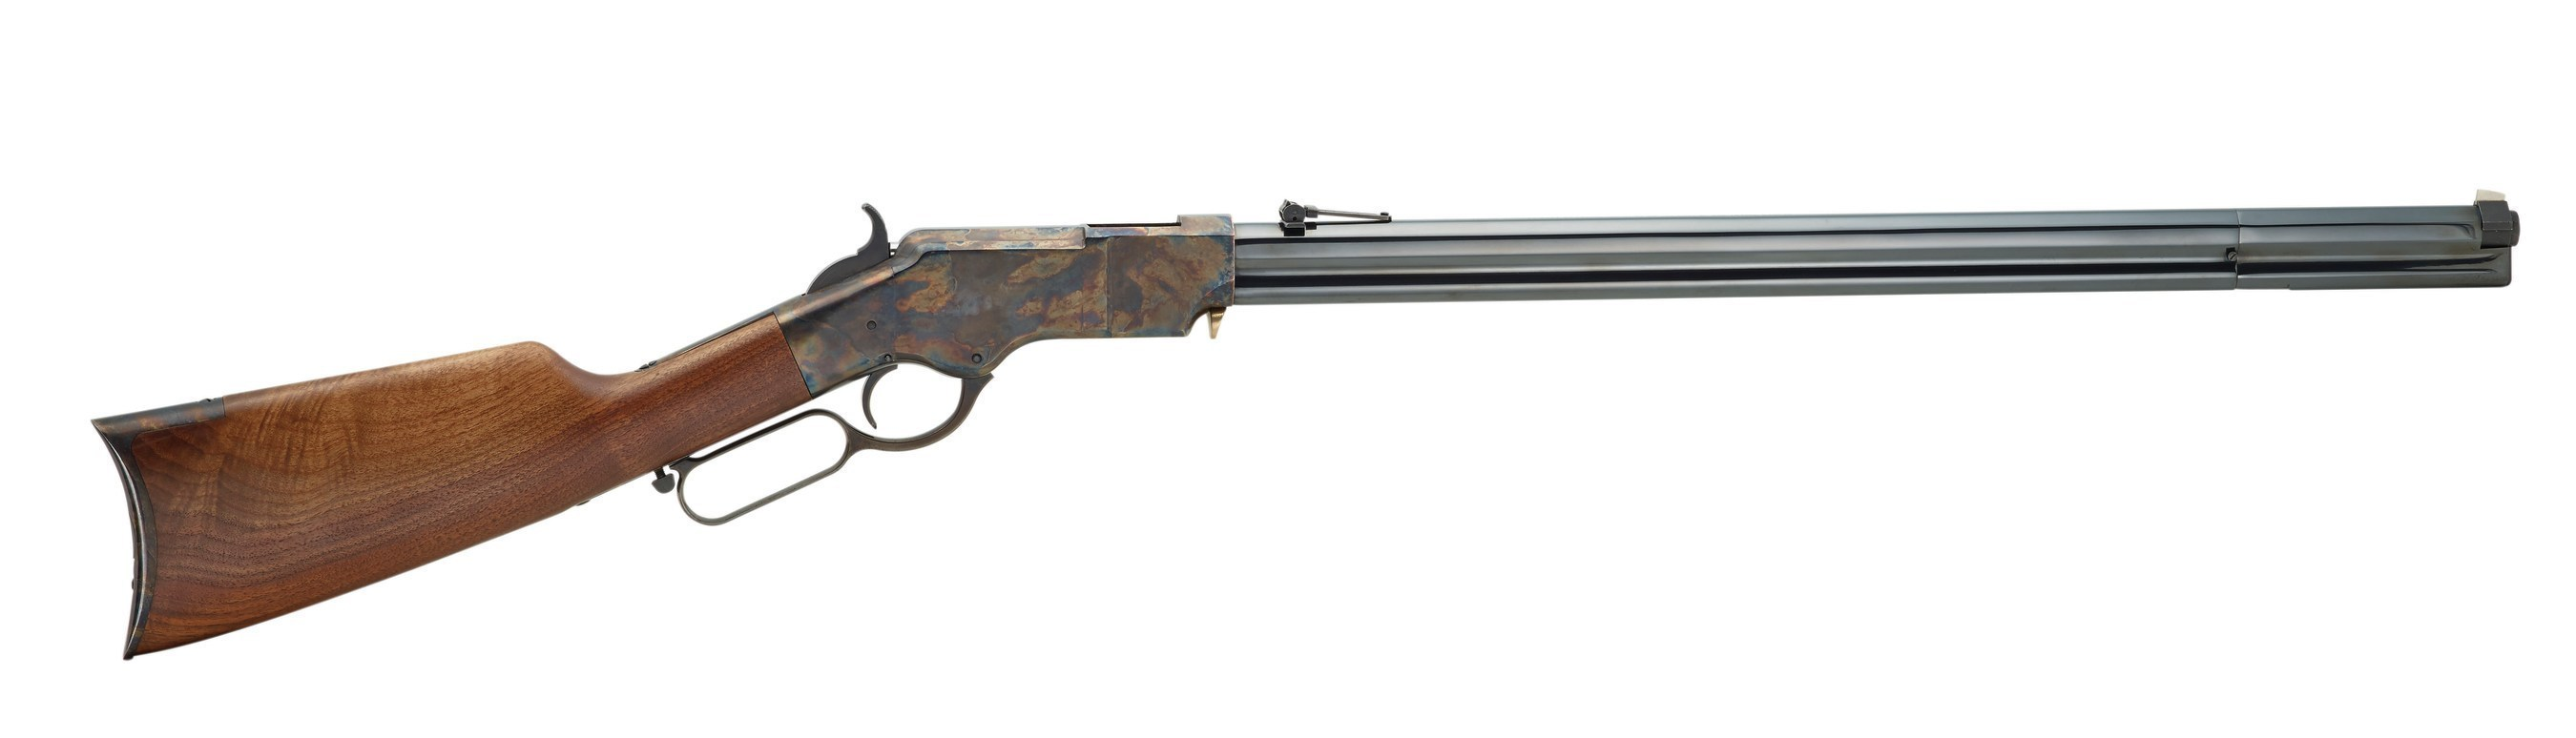 Henry Repeating Arms Donations Expected to Raise $100,000+